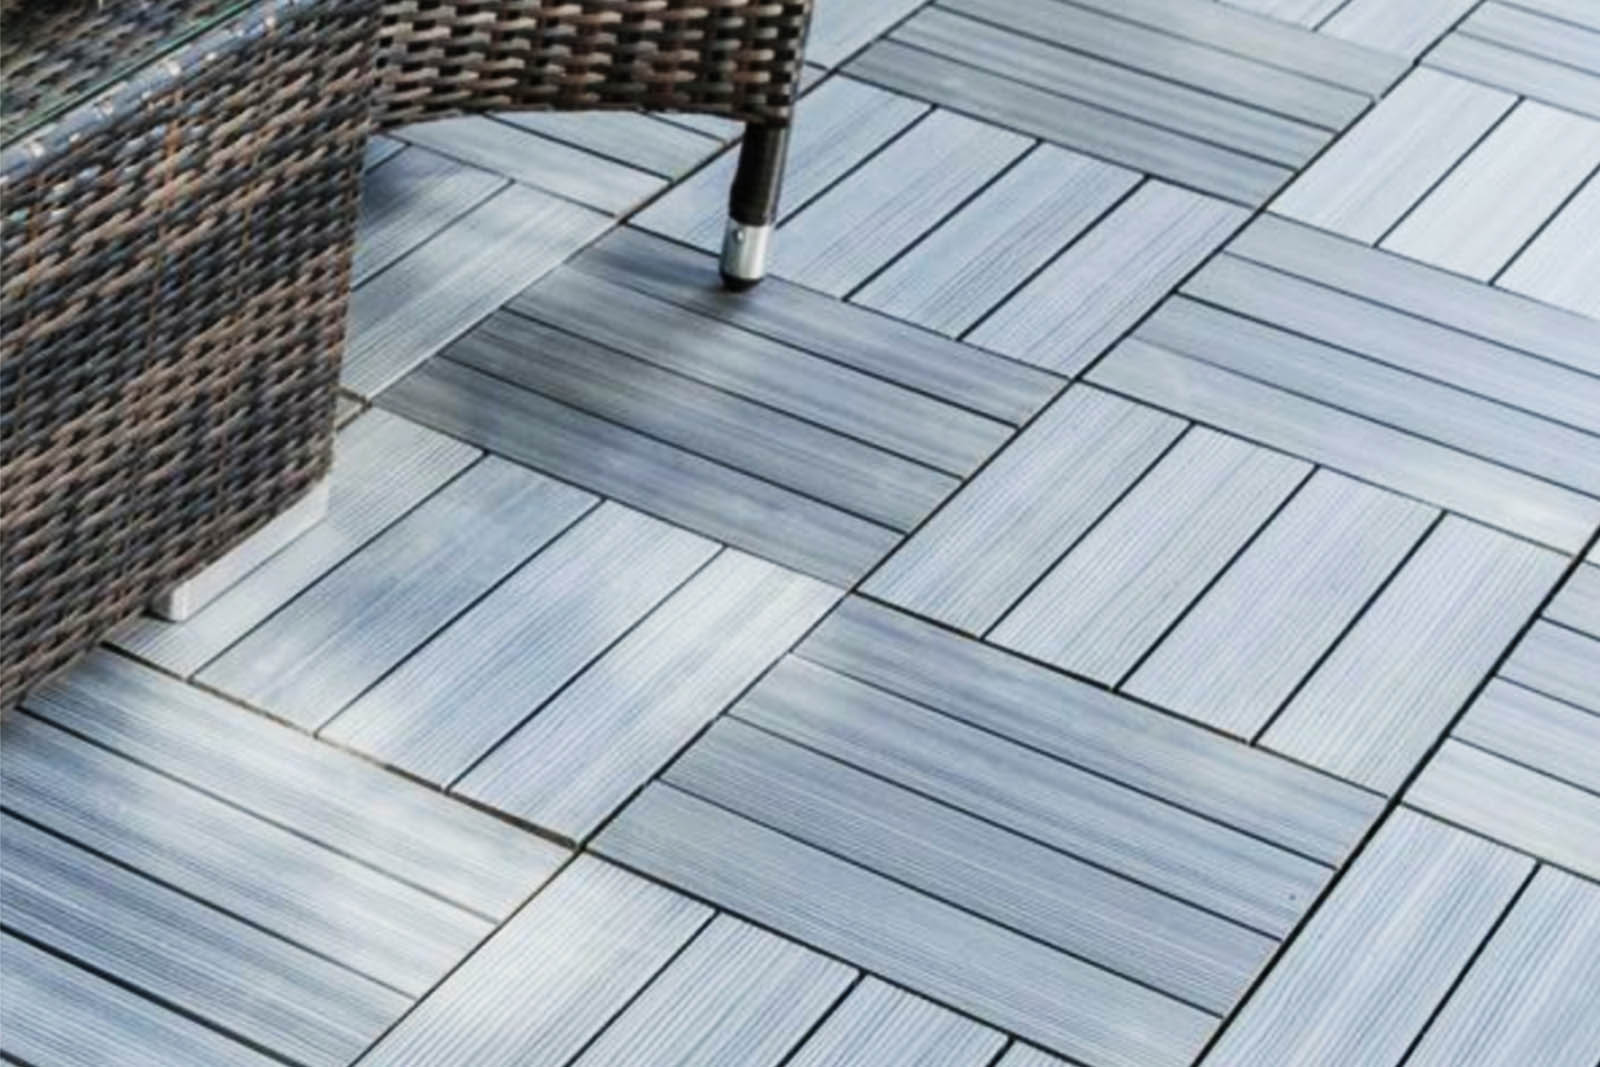 Ottawa outdoor flooring condo balcony tiles ottawa outdoor flooring dailygadgetfo Images